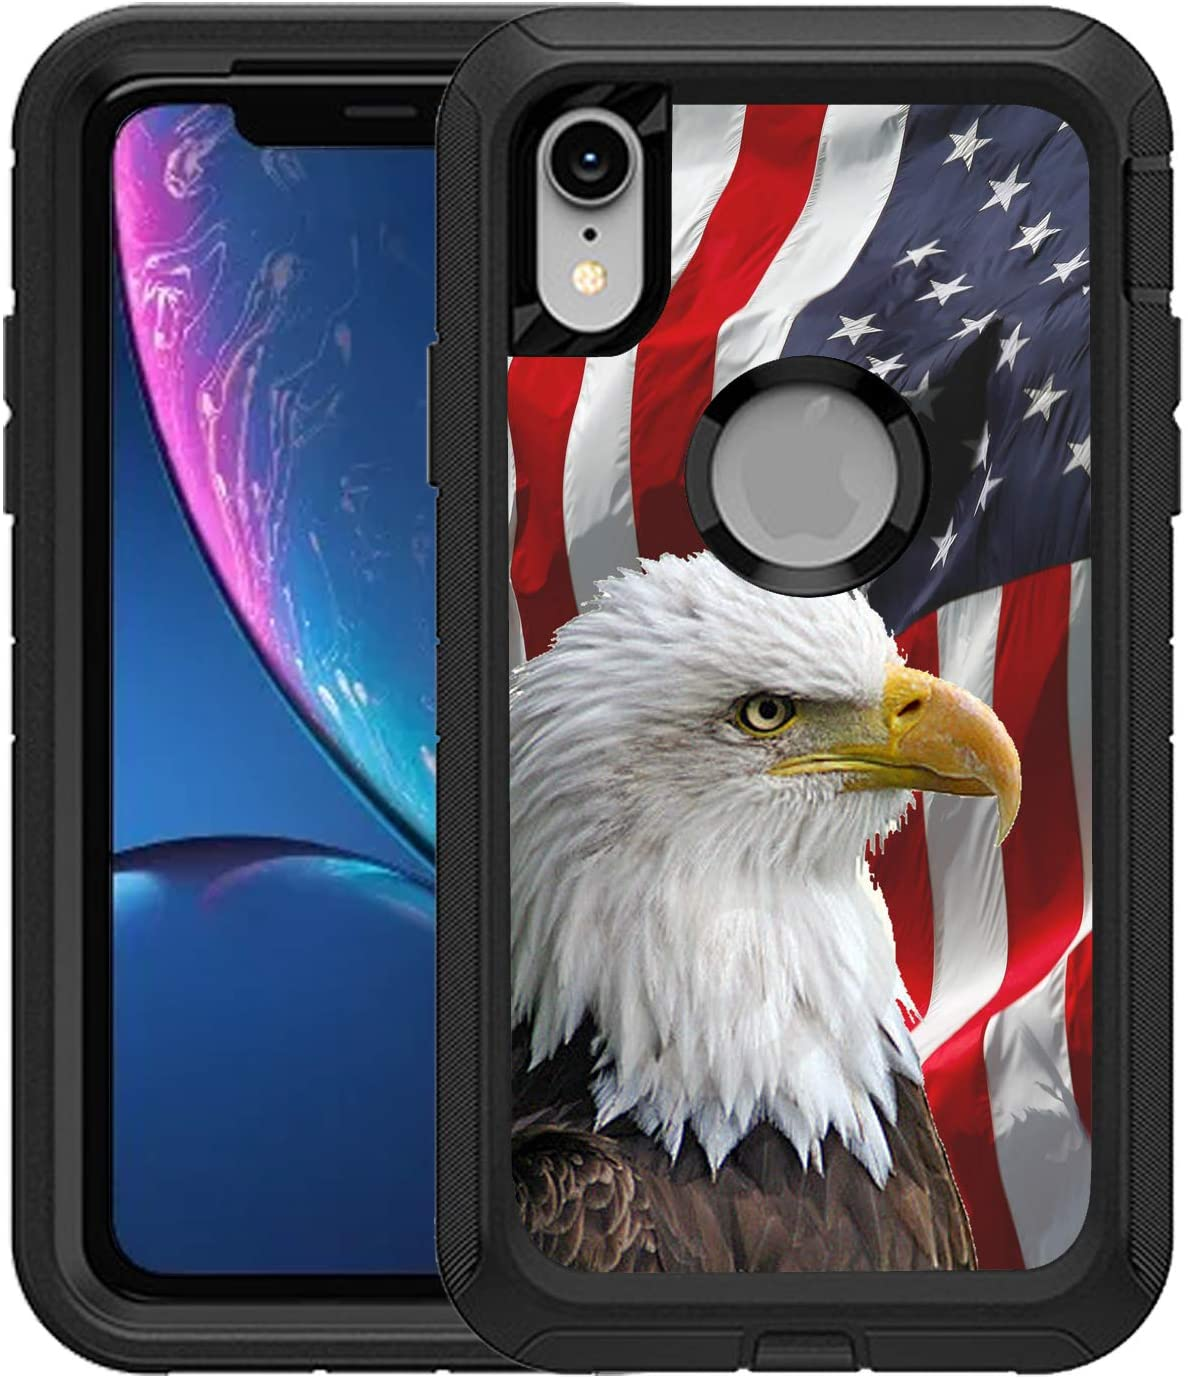 TeleSkins Protective Designer Vinyl Skin Decals/Stickers Compatible with Otterbox Defender iPhone Xr Case -Bald Eagle American Flag Design Patterns - only Skins and not Case